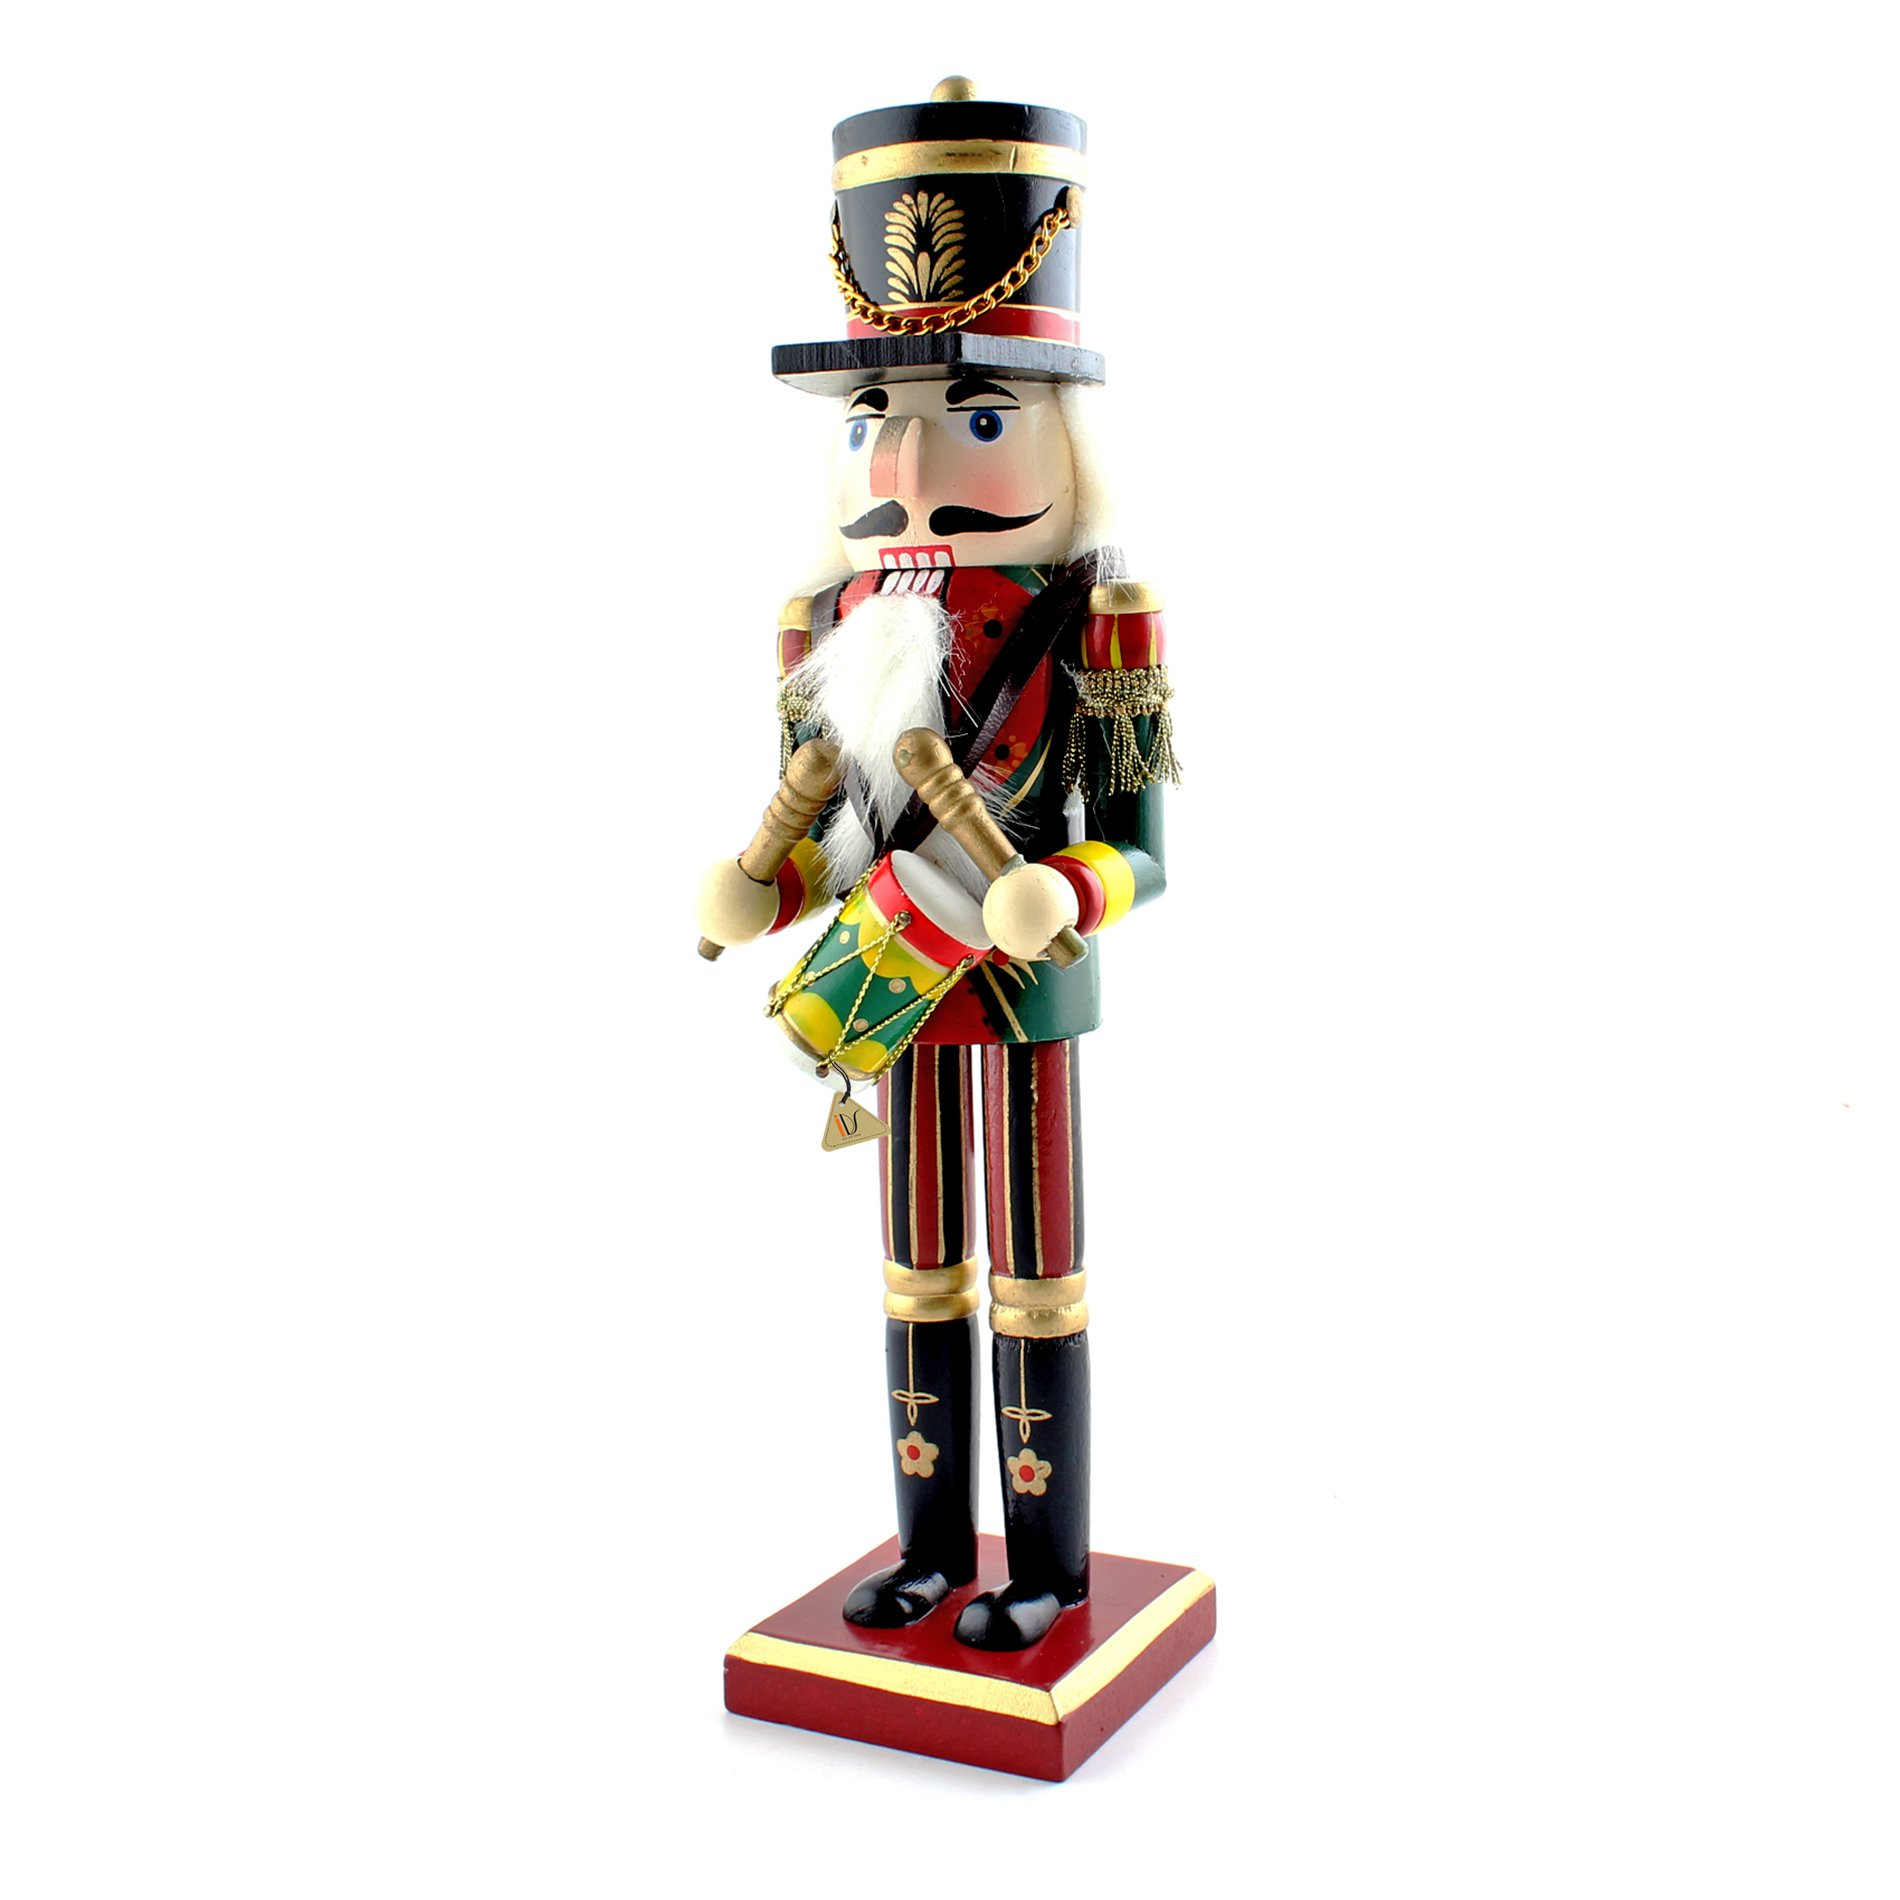 OLSUS 12'' Drums Nutcracker Wooden Soldier Toys Ornaments Holiday Decoration Gift